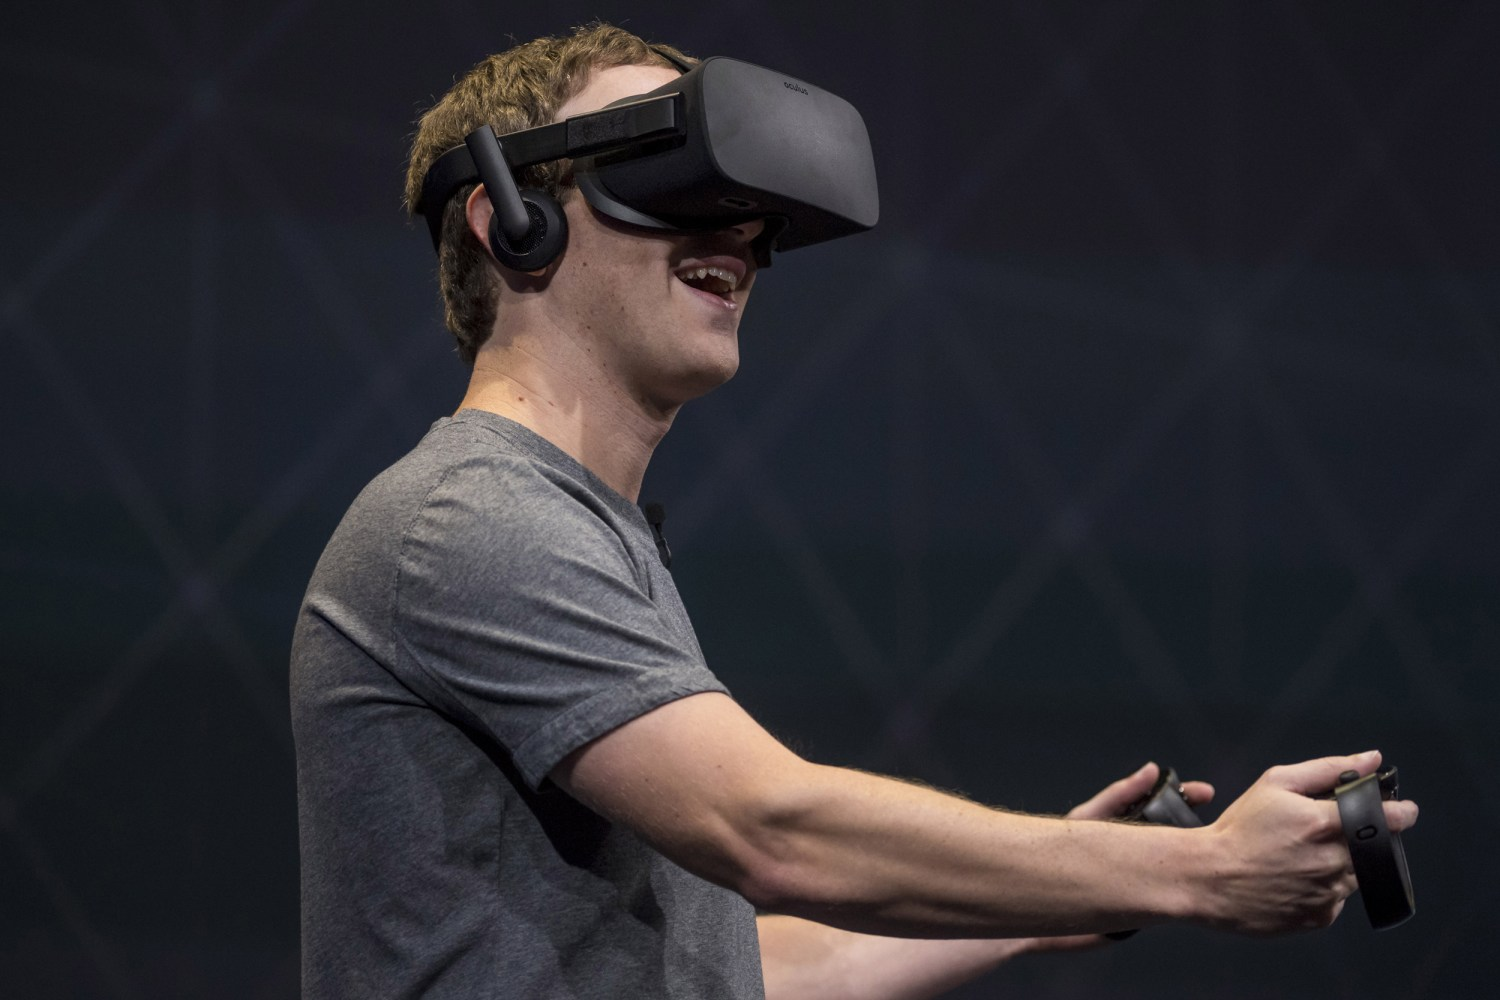 Mark Zuckerberg tours the Oculus Research lab, brings a camera